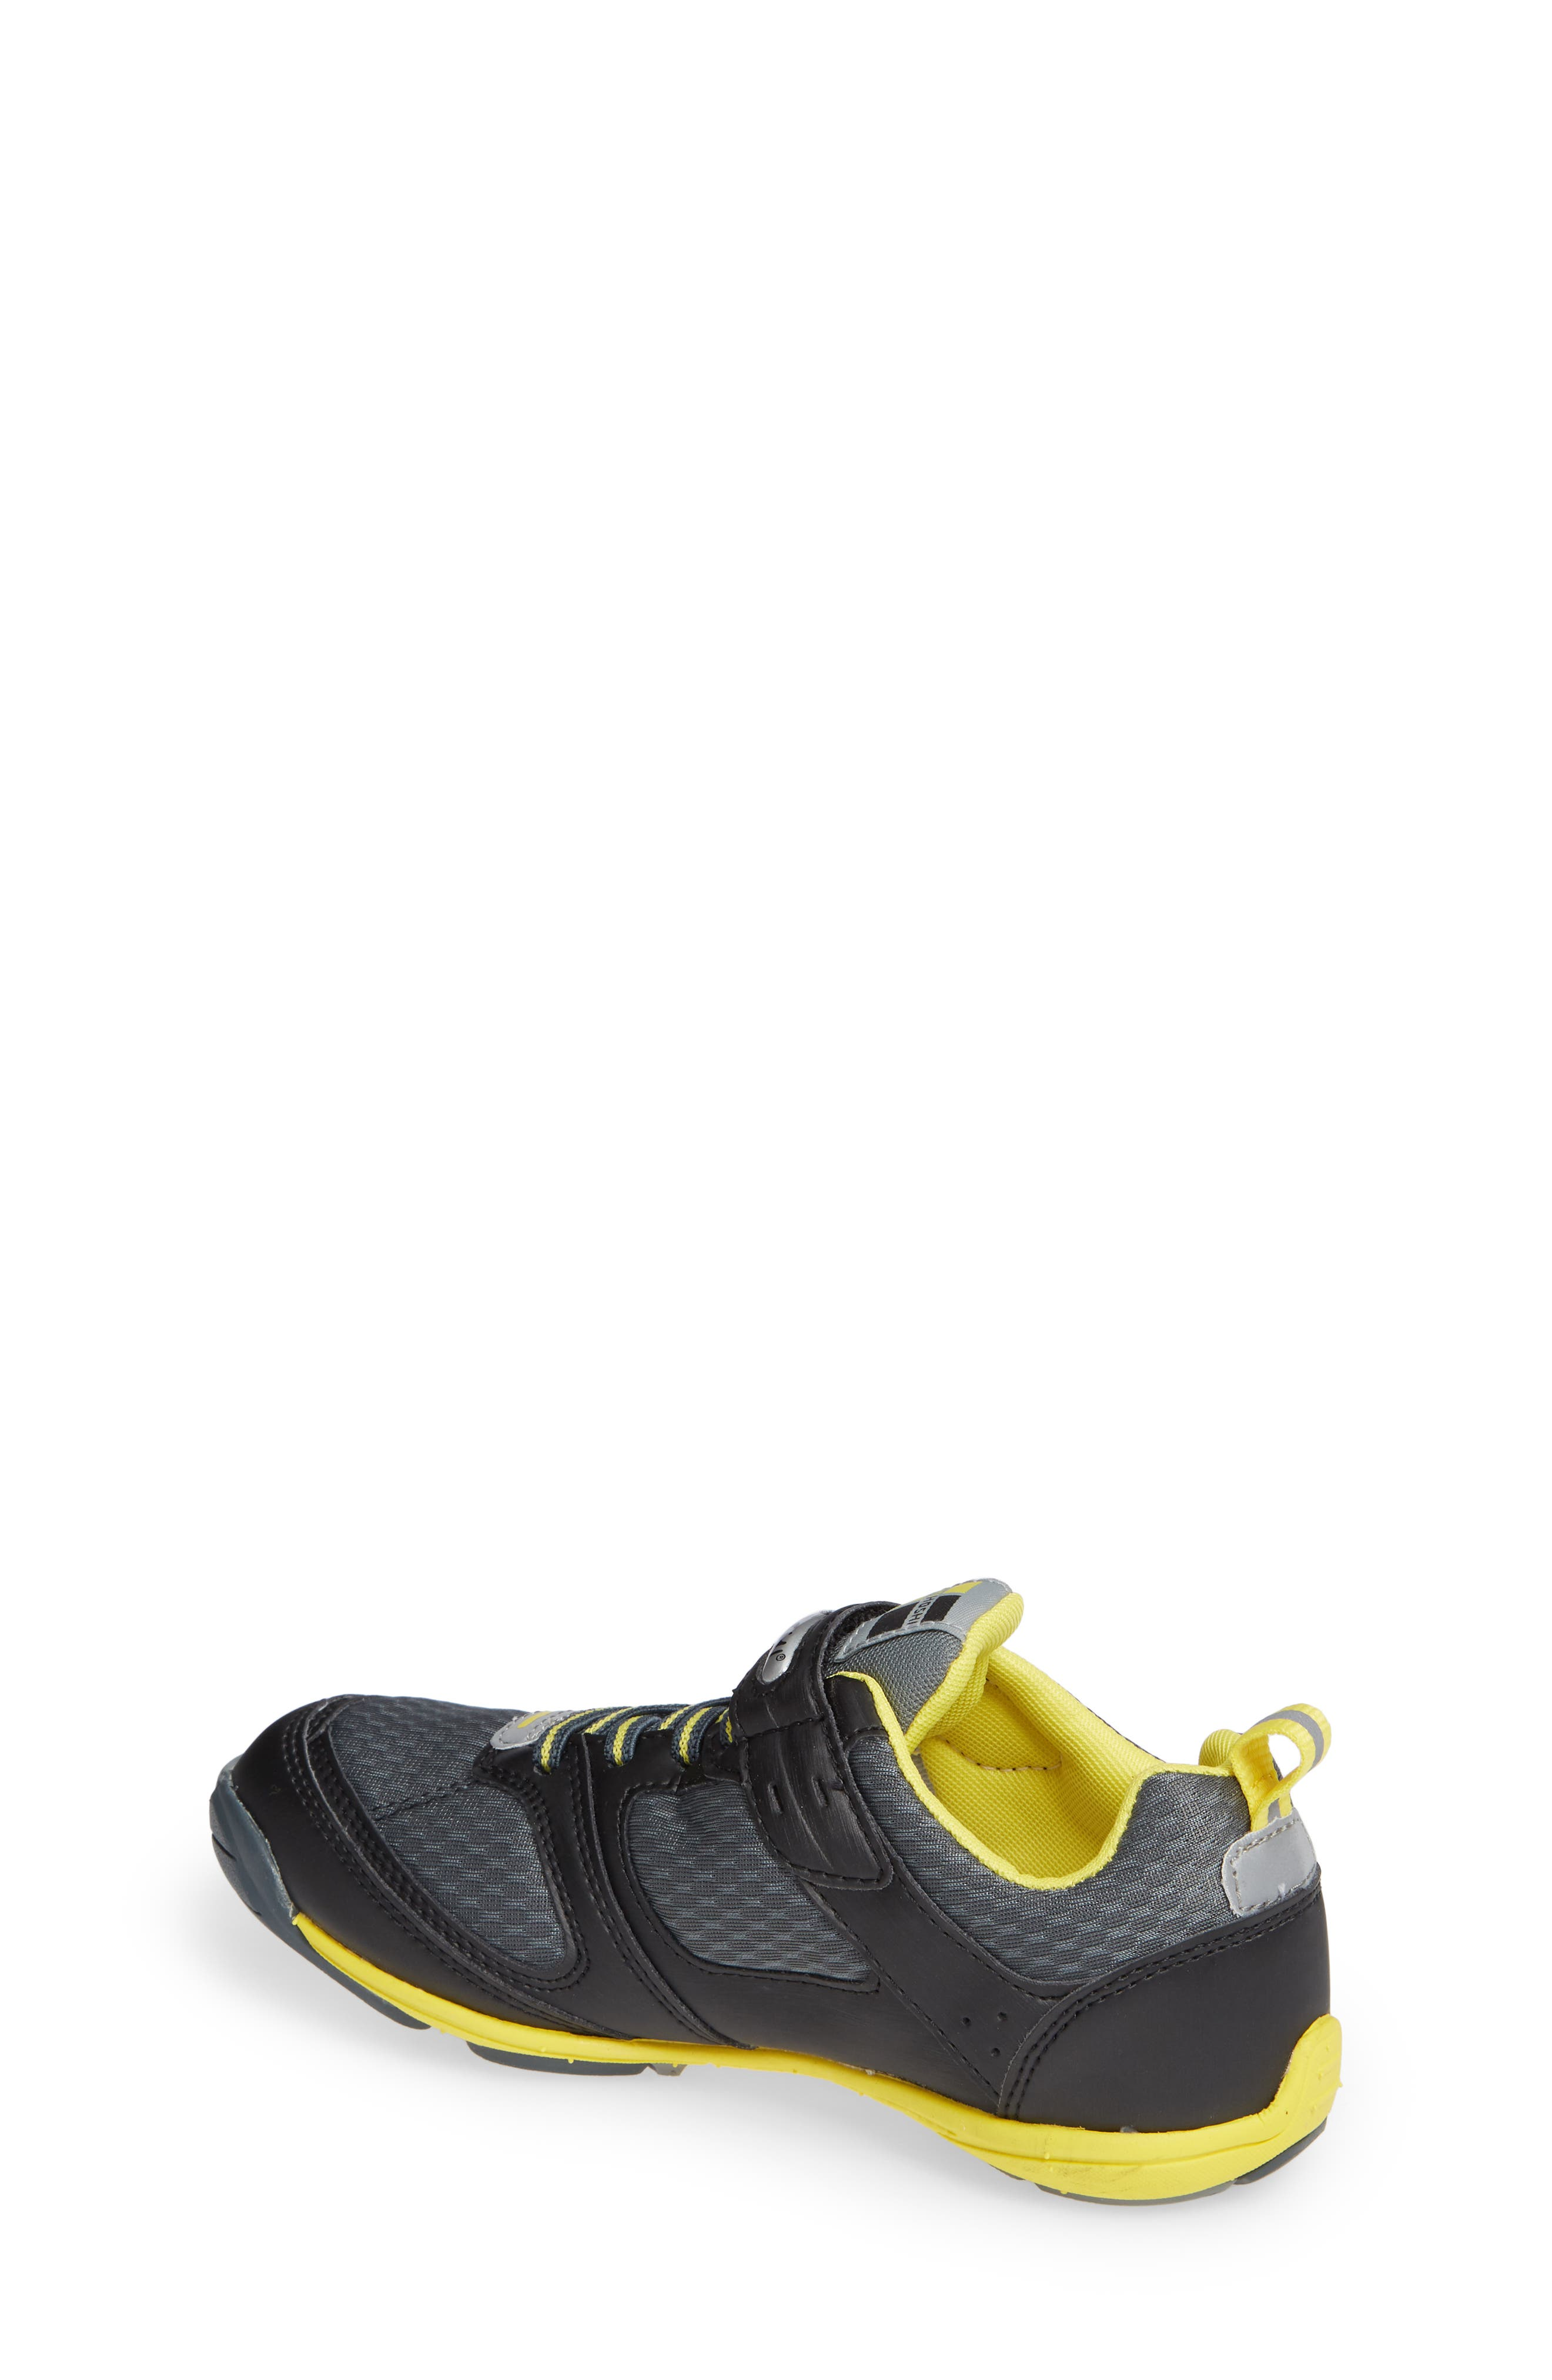 TSUKIHOSHI, Mako Washable Sneaker, Alternate thumbnail 2, color, BLACK/ YELLOW